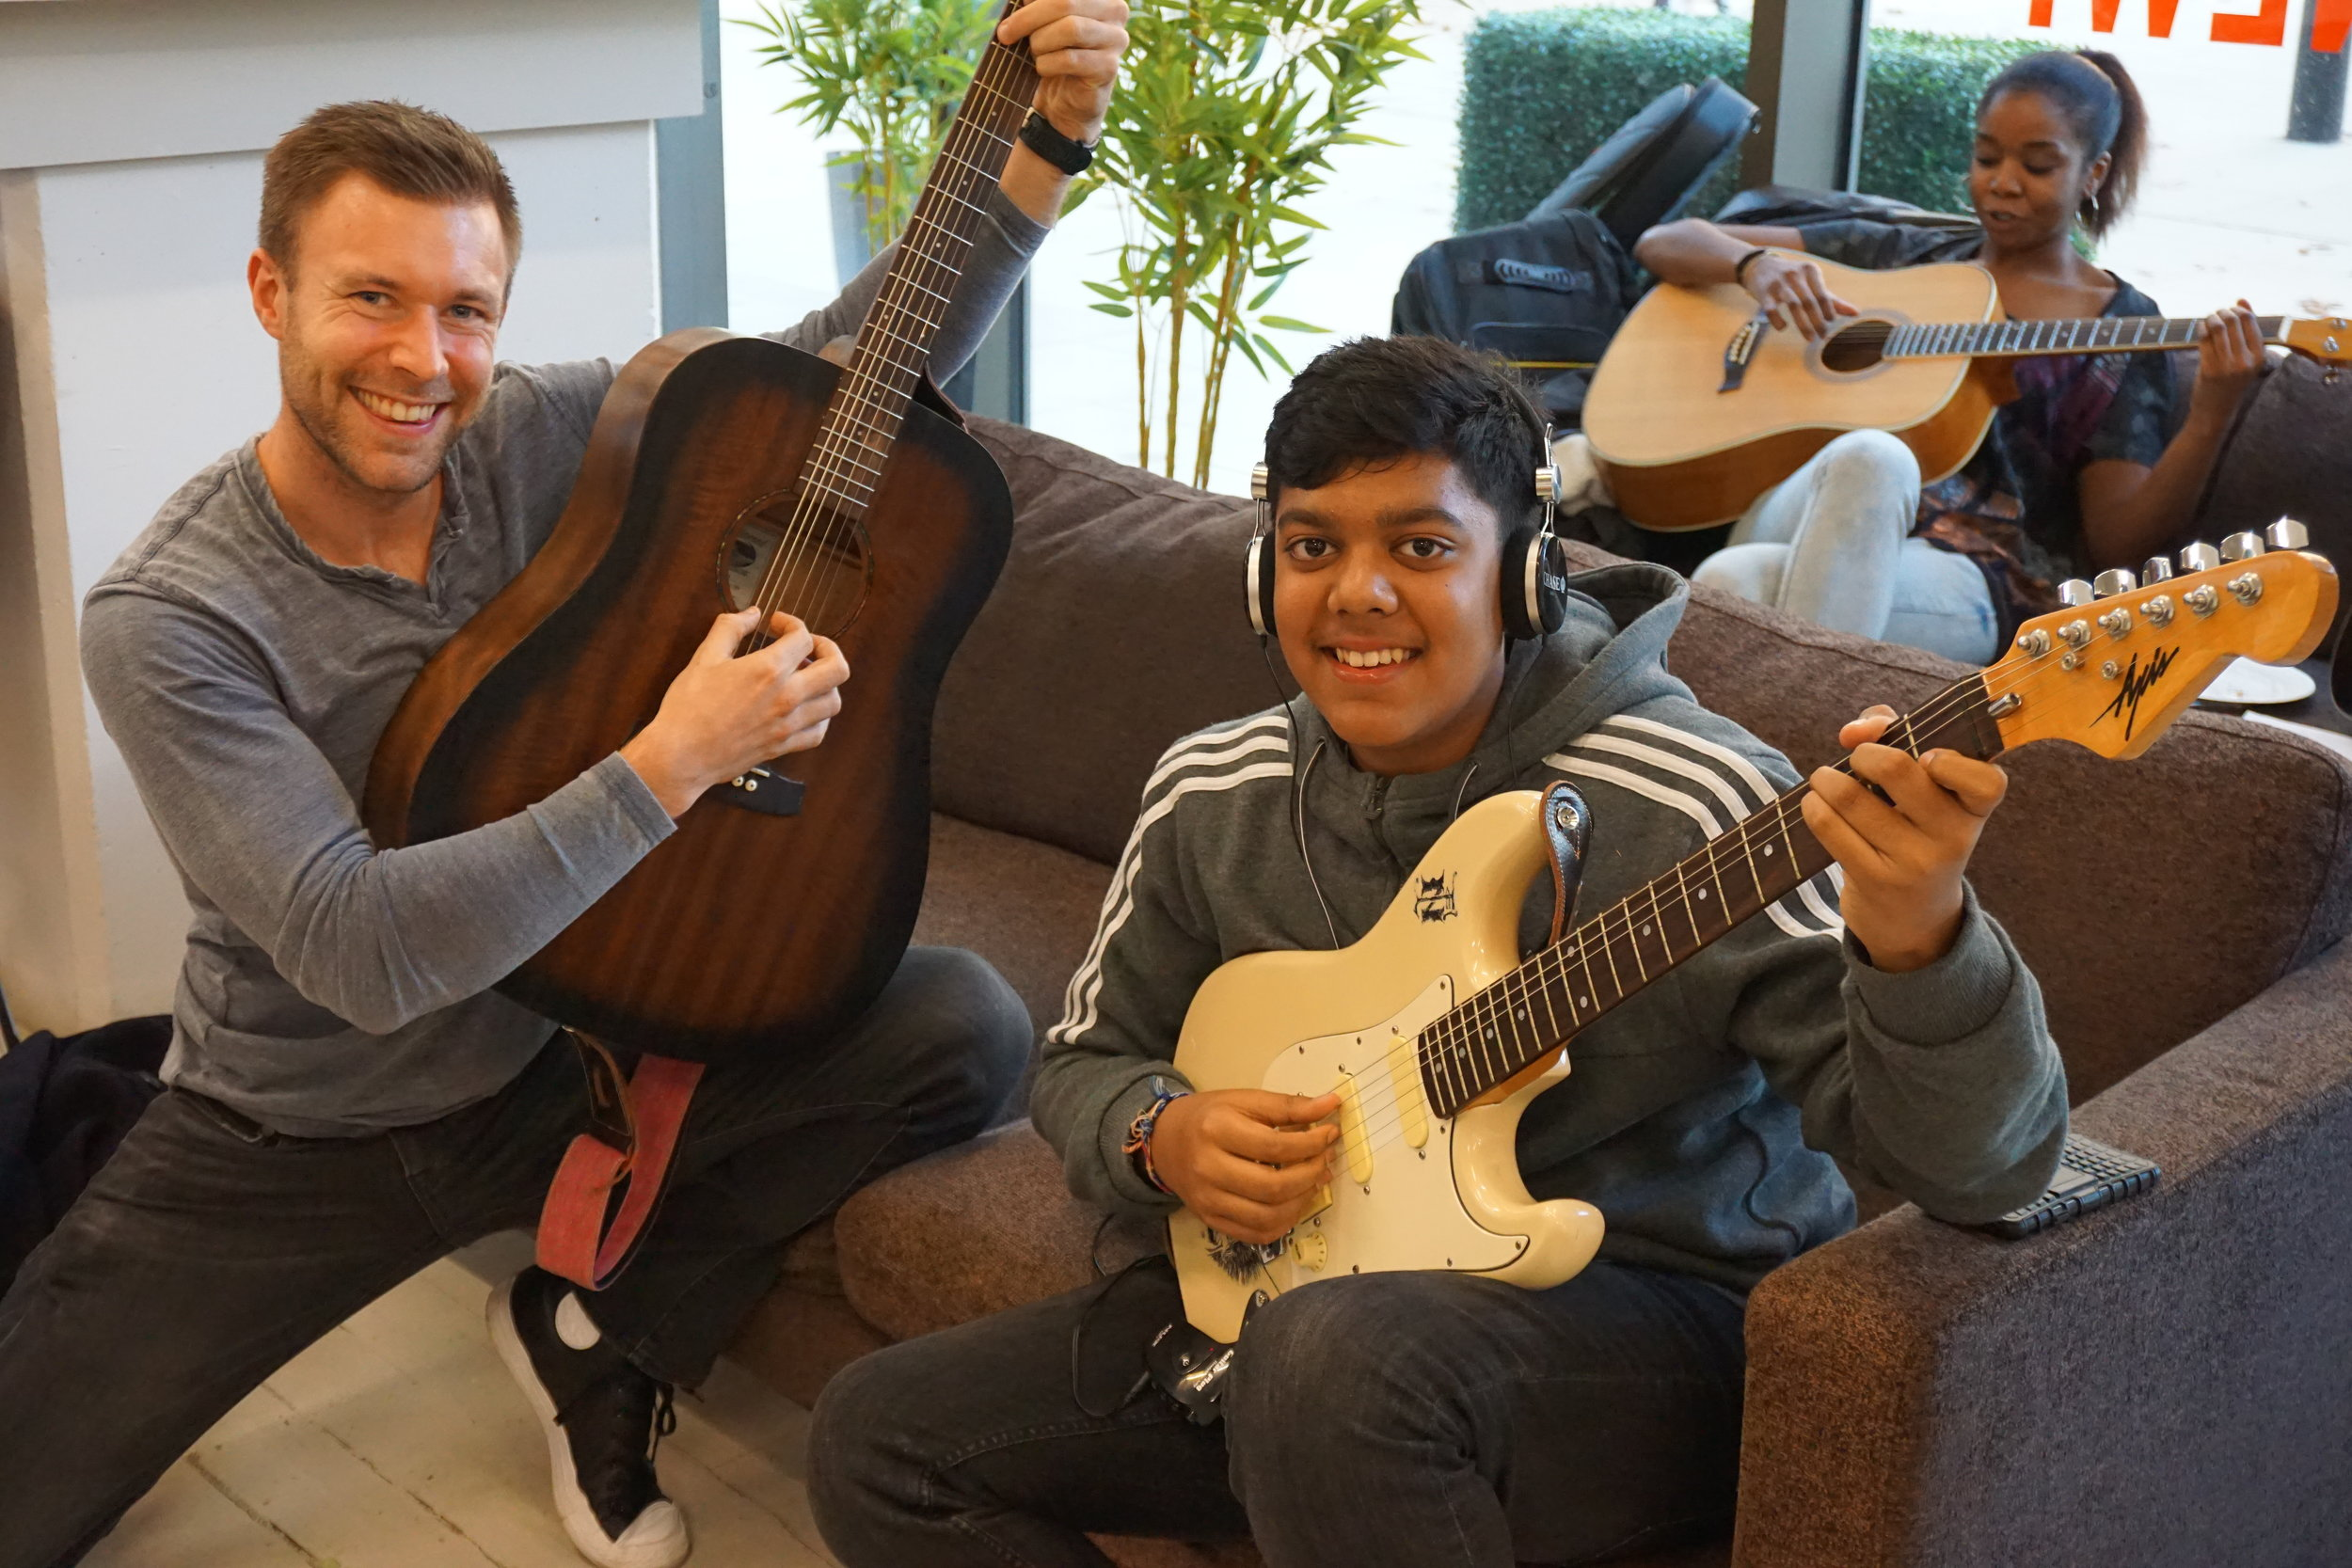 Meet new guitar friends! Two student, Tom and Hrydai who are both our guitar students sharing a love of movies at one of our events.